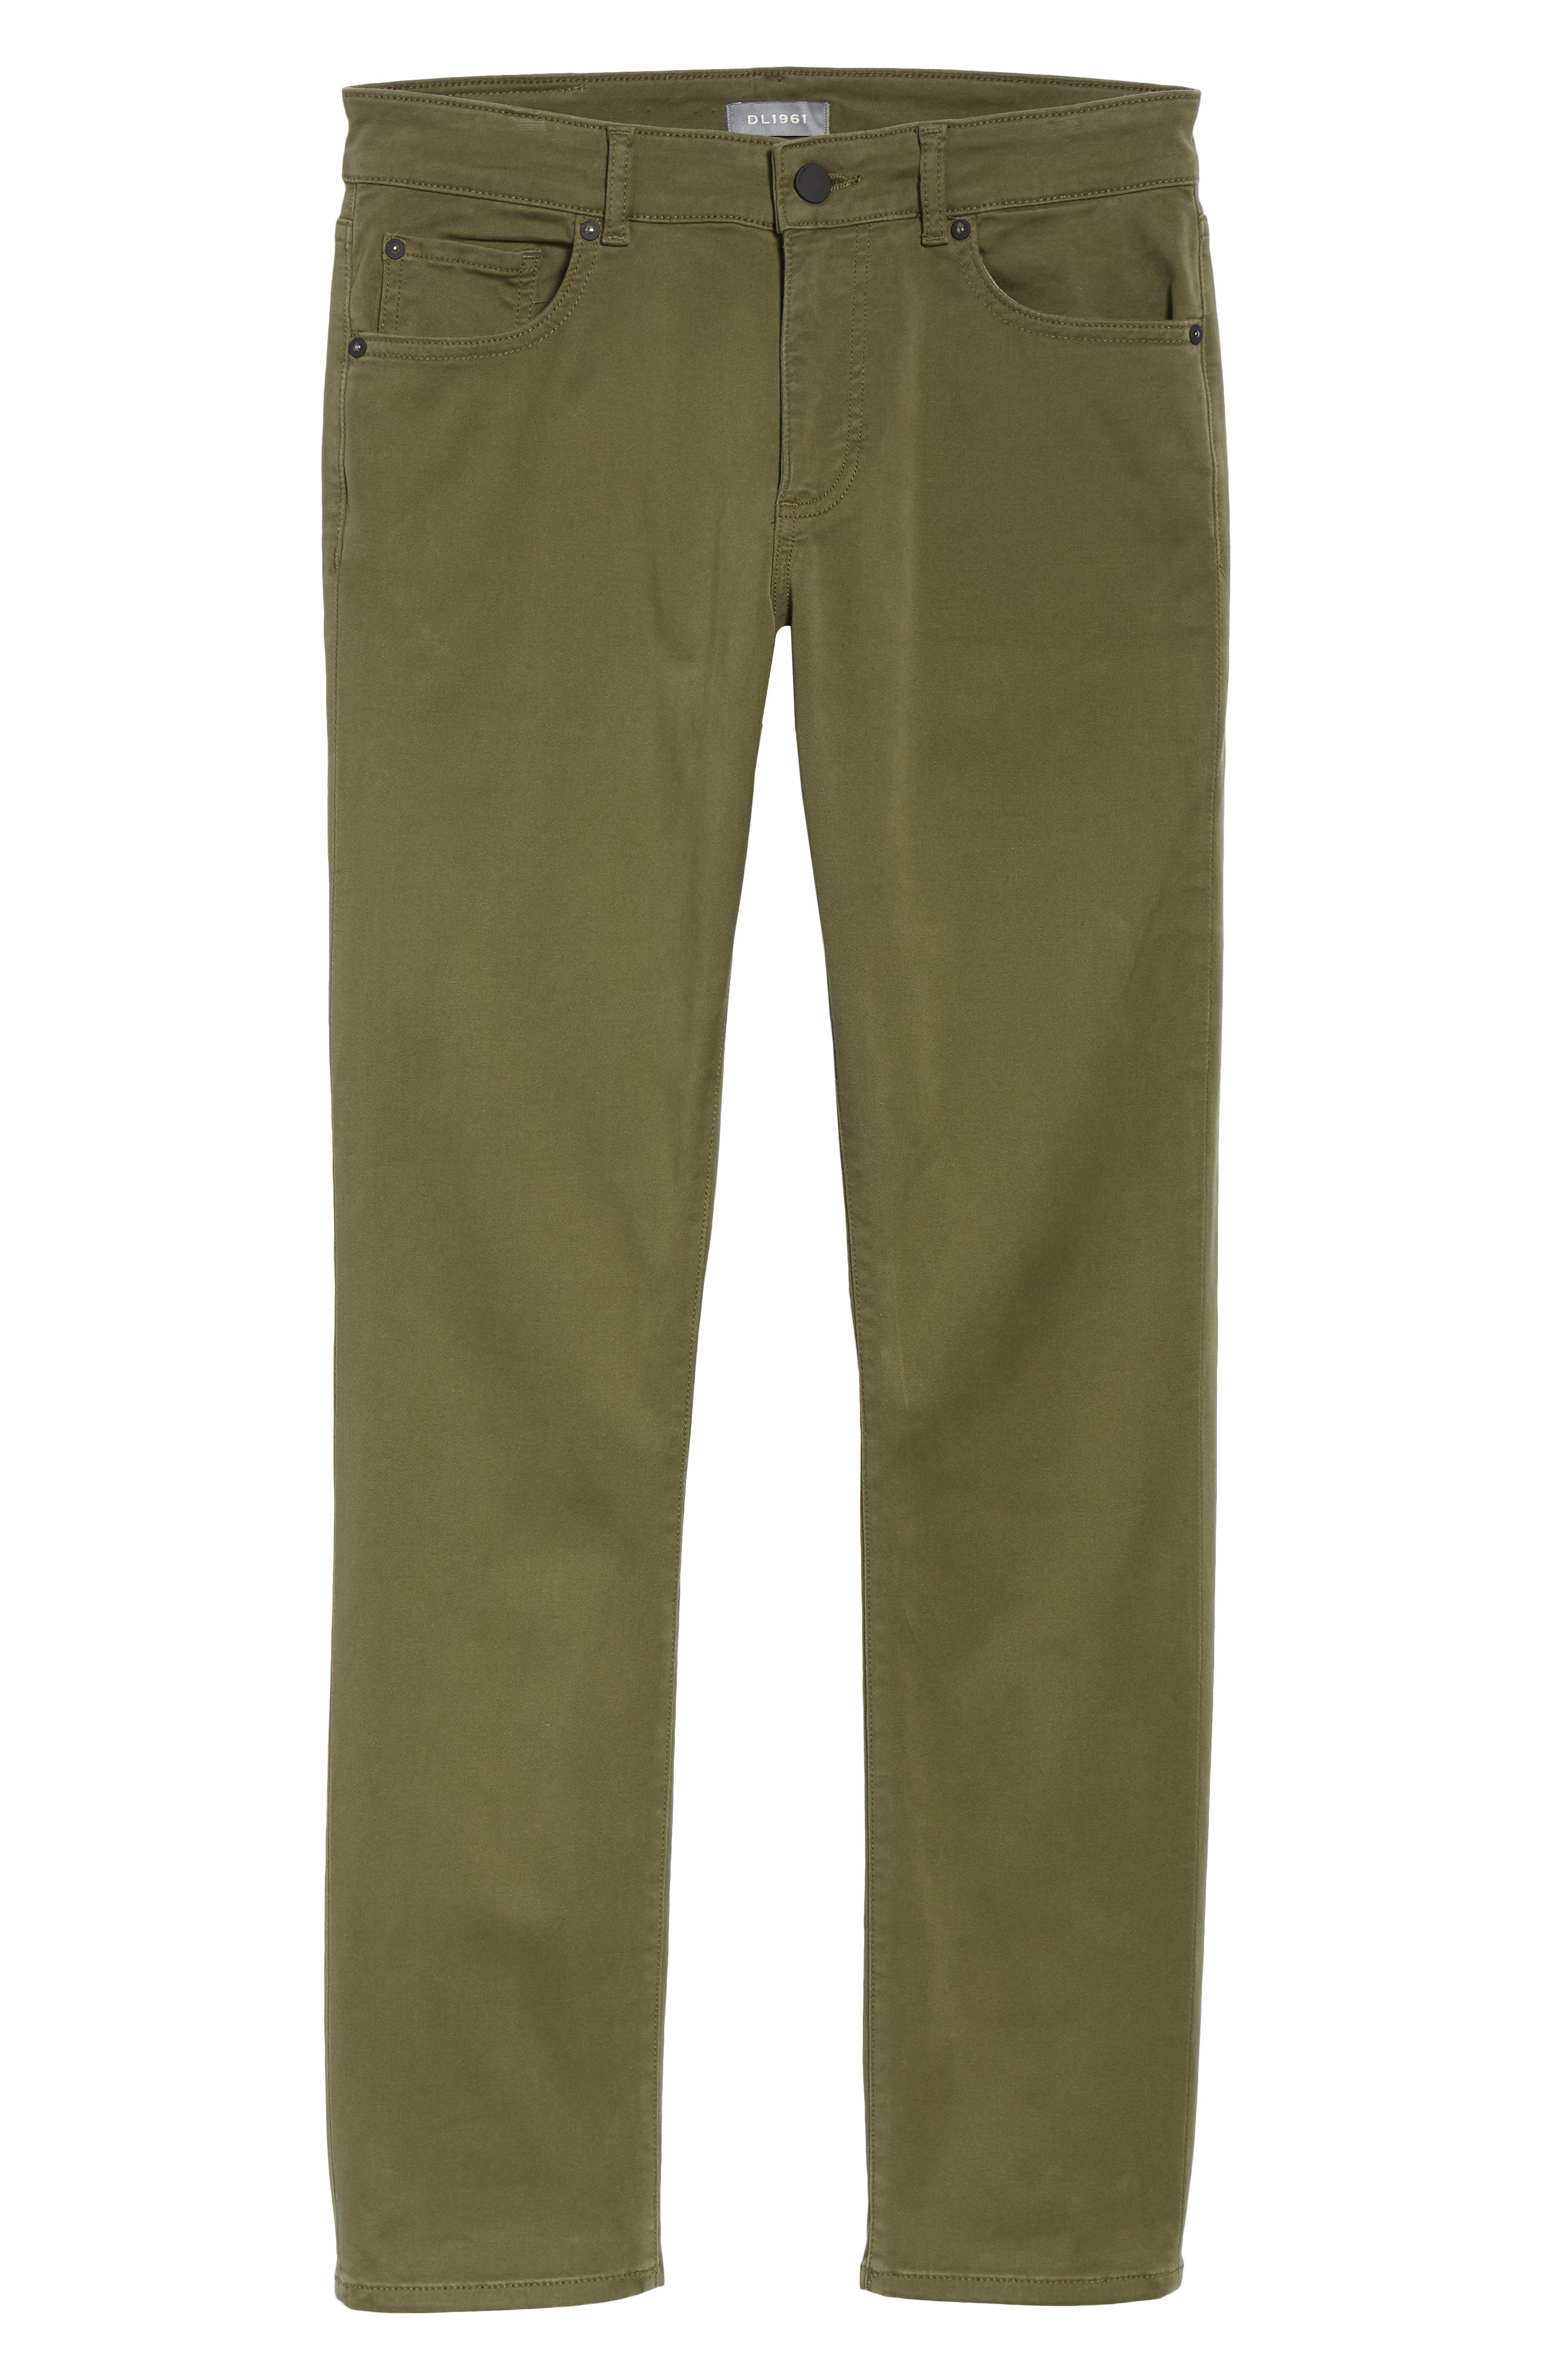 Russell Slim Fit Sateen Twill Pants,                             Alternate thumbnail 56, color,